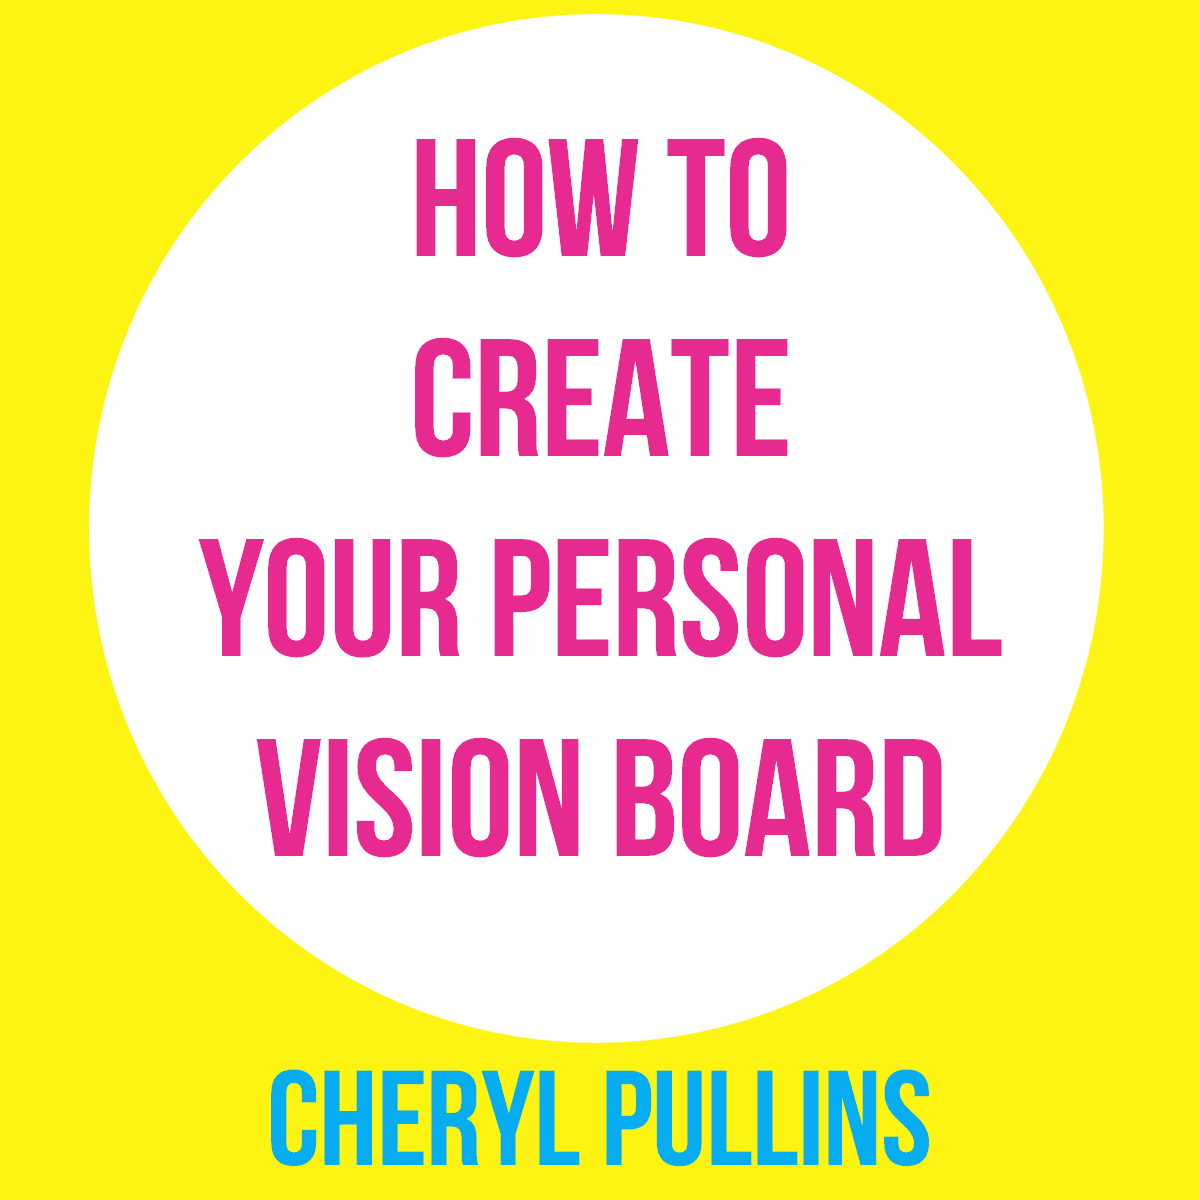 How To Create Your Personal Vision Board Action Guide